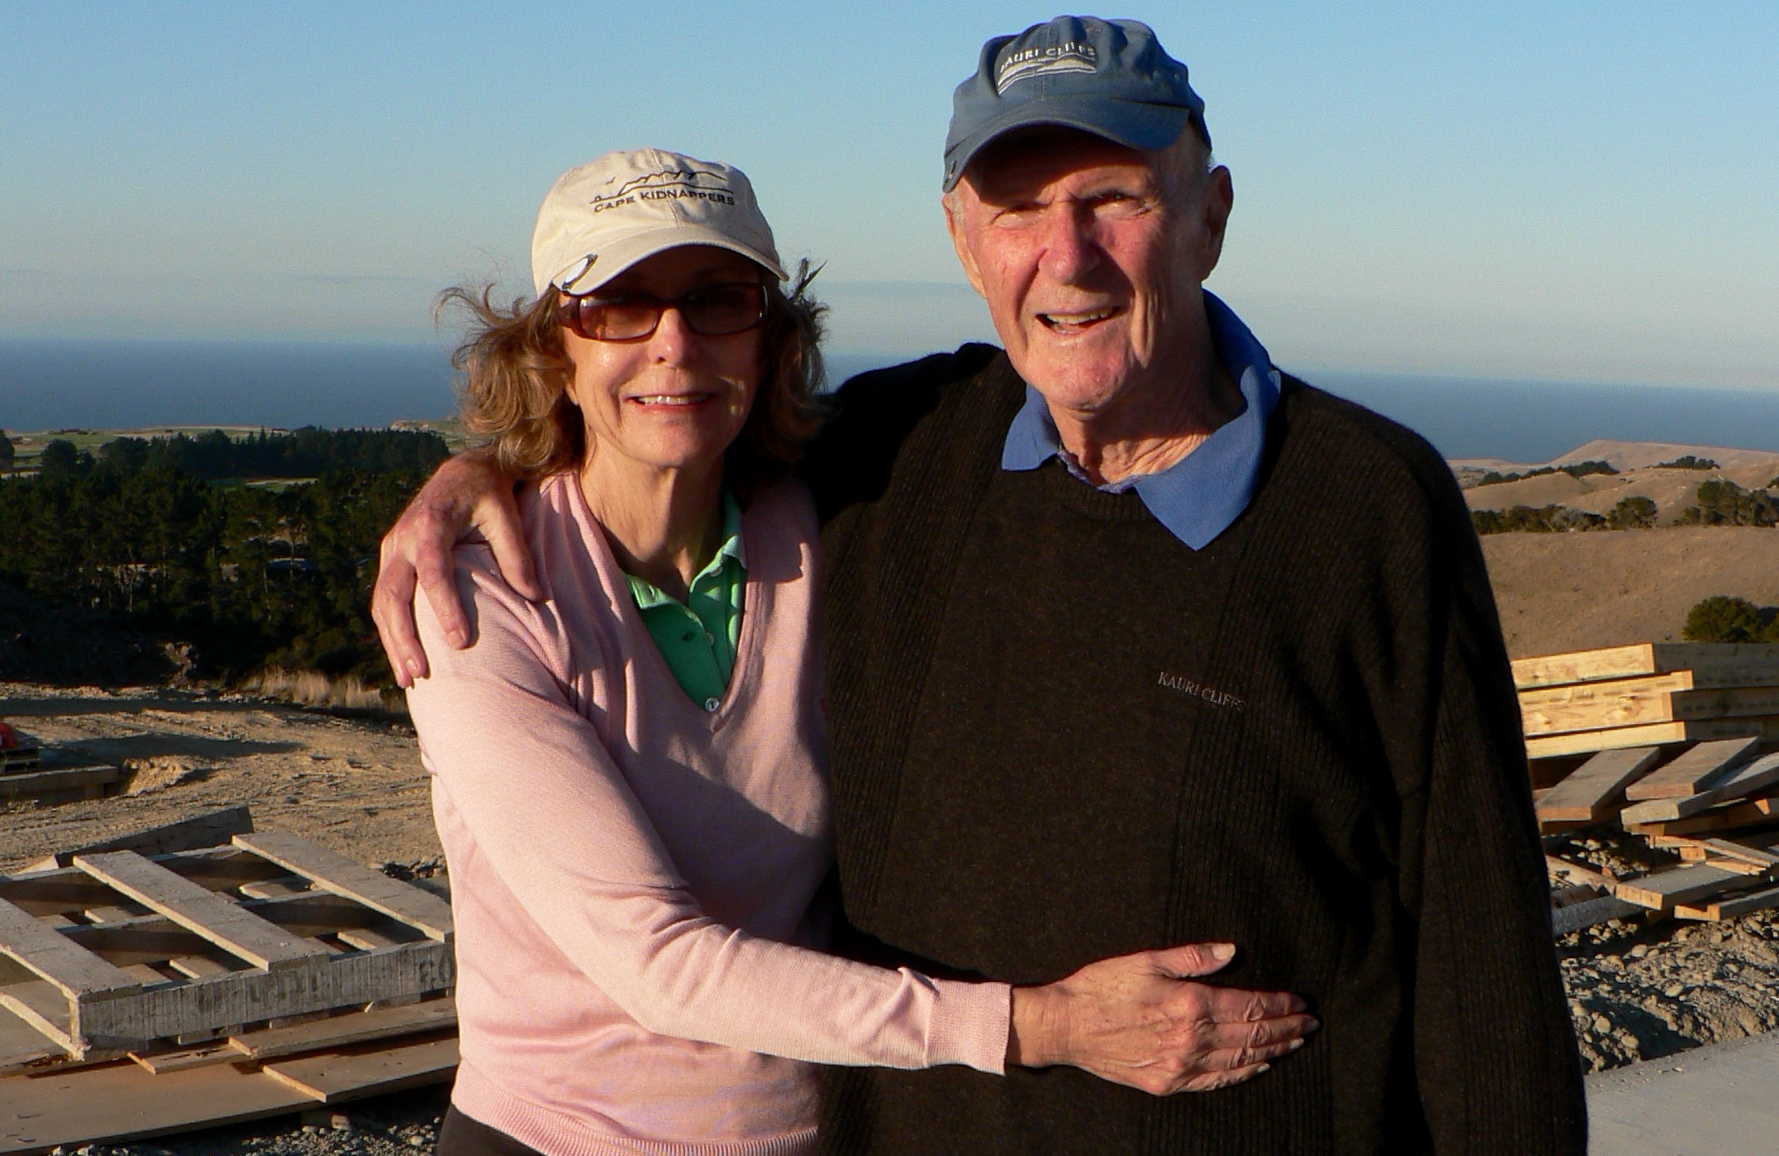 Josie and Julian Robertson, Cape Kidnappers, March 11, 2007.